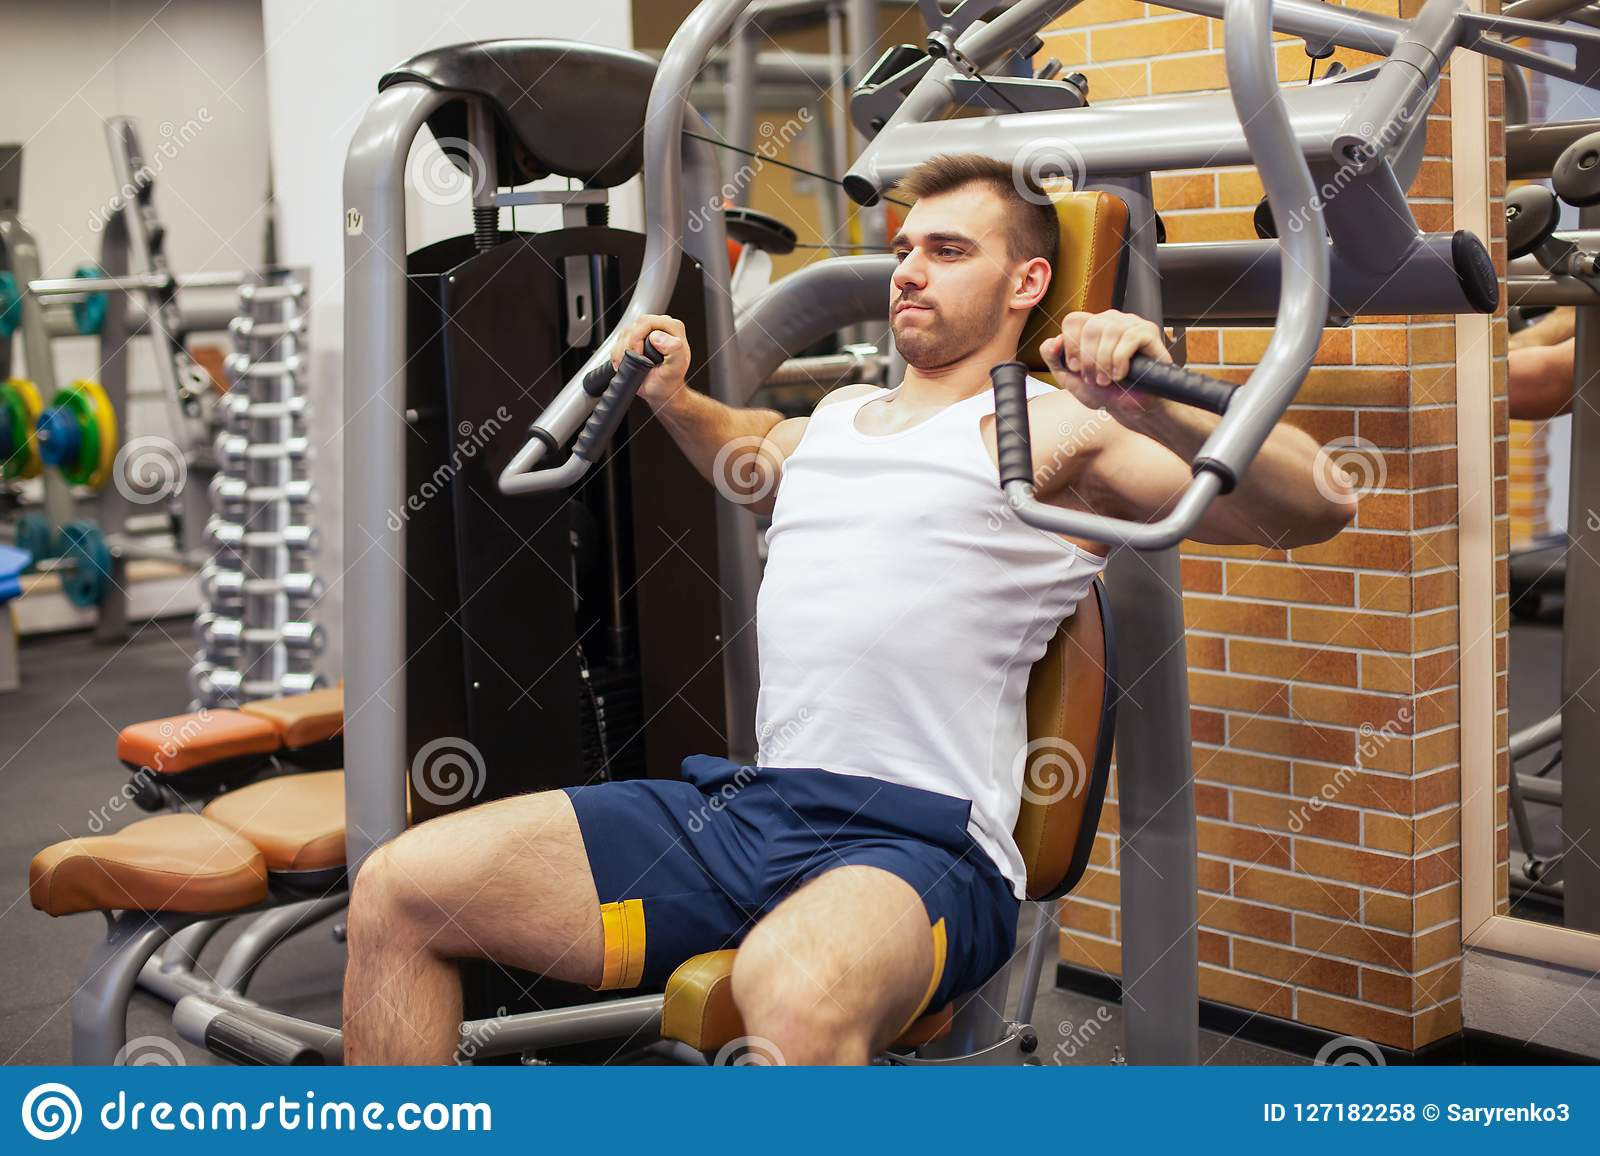 gym chest chair covers for sale ontario man exercising at fitness athlete doing